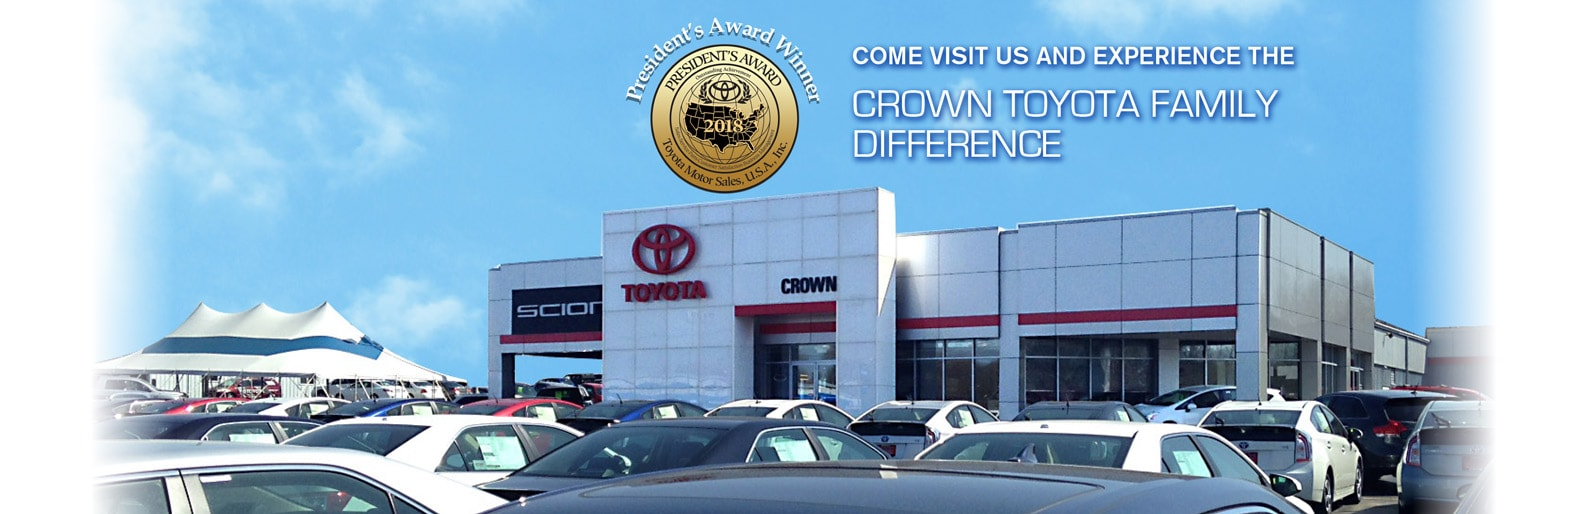 Car Dealerships Bloomington Il >> Toyota Dealer Serving Bloomington Il Crown Toyota